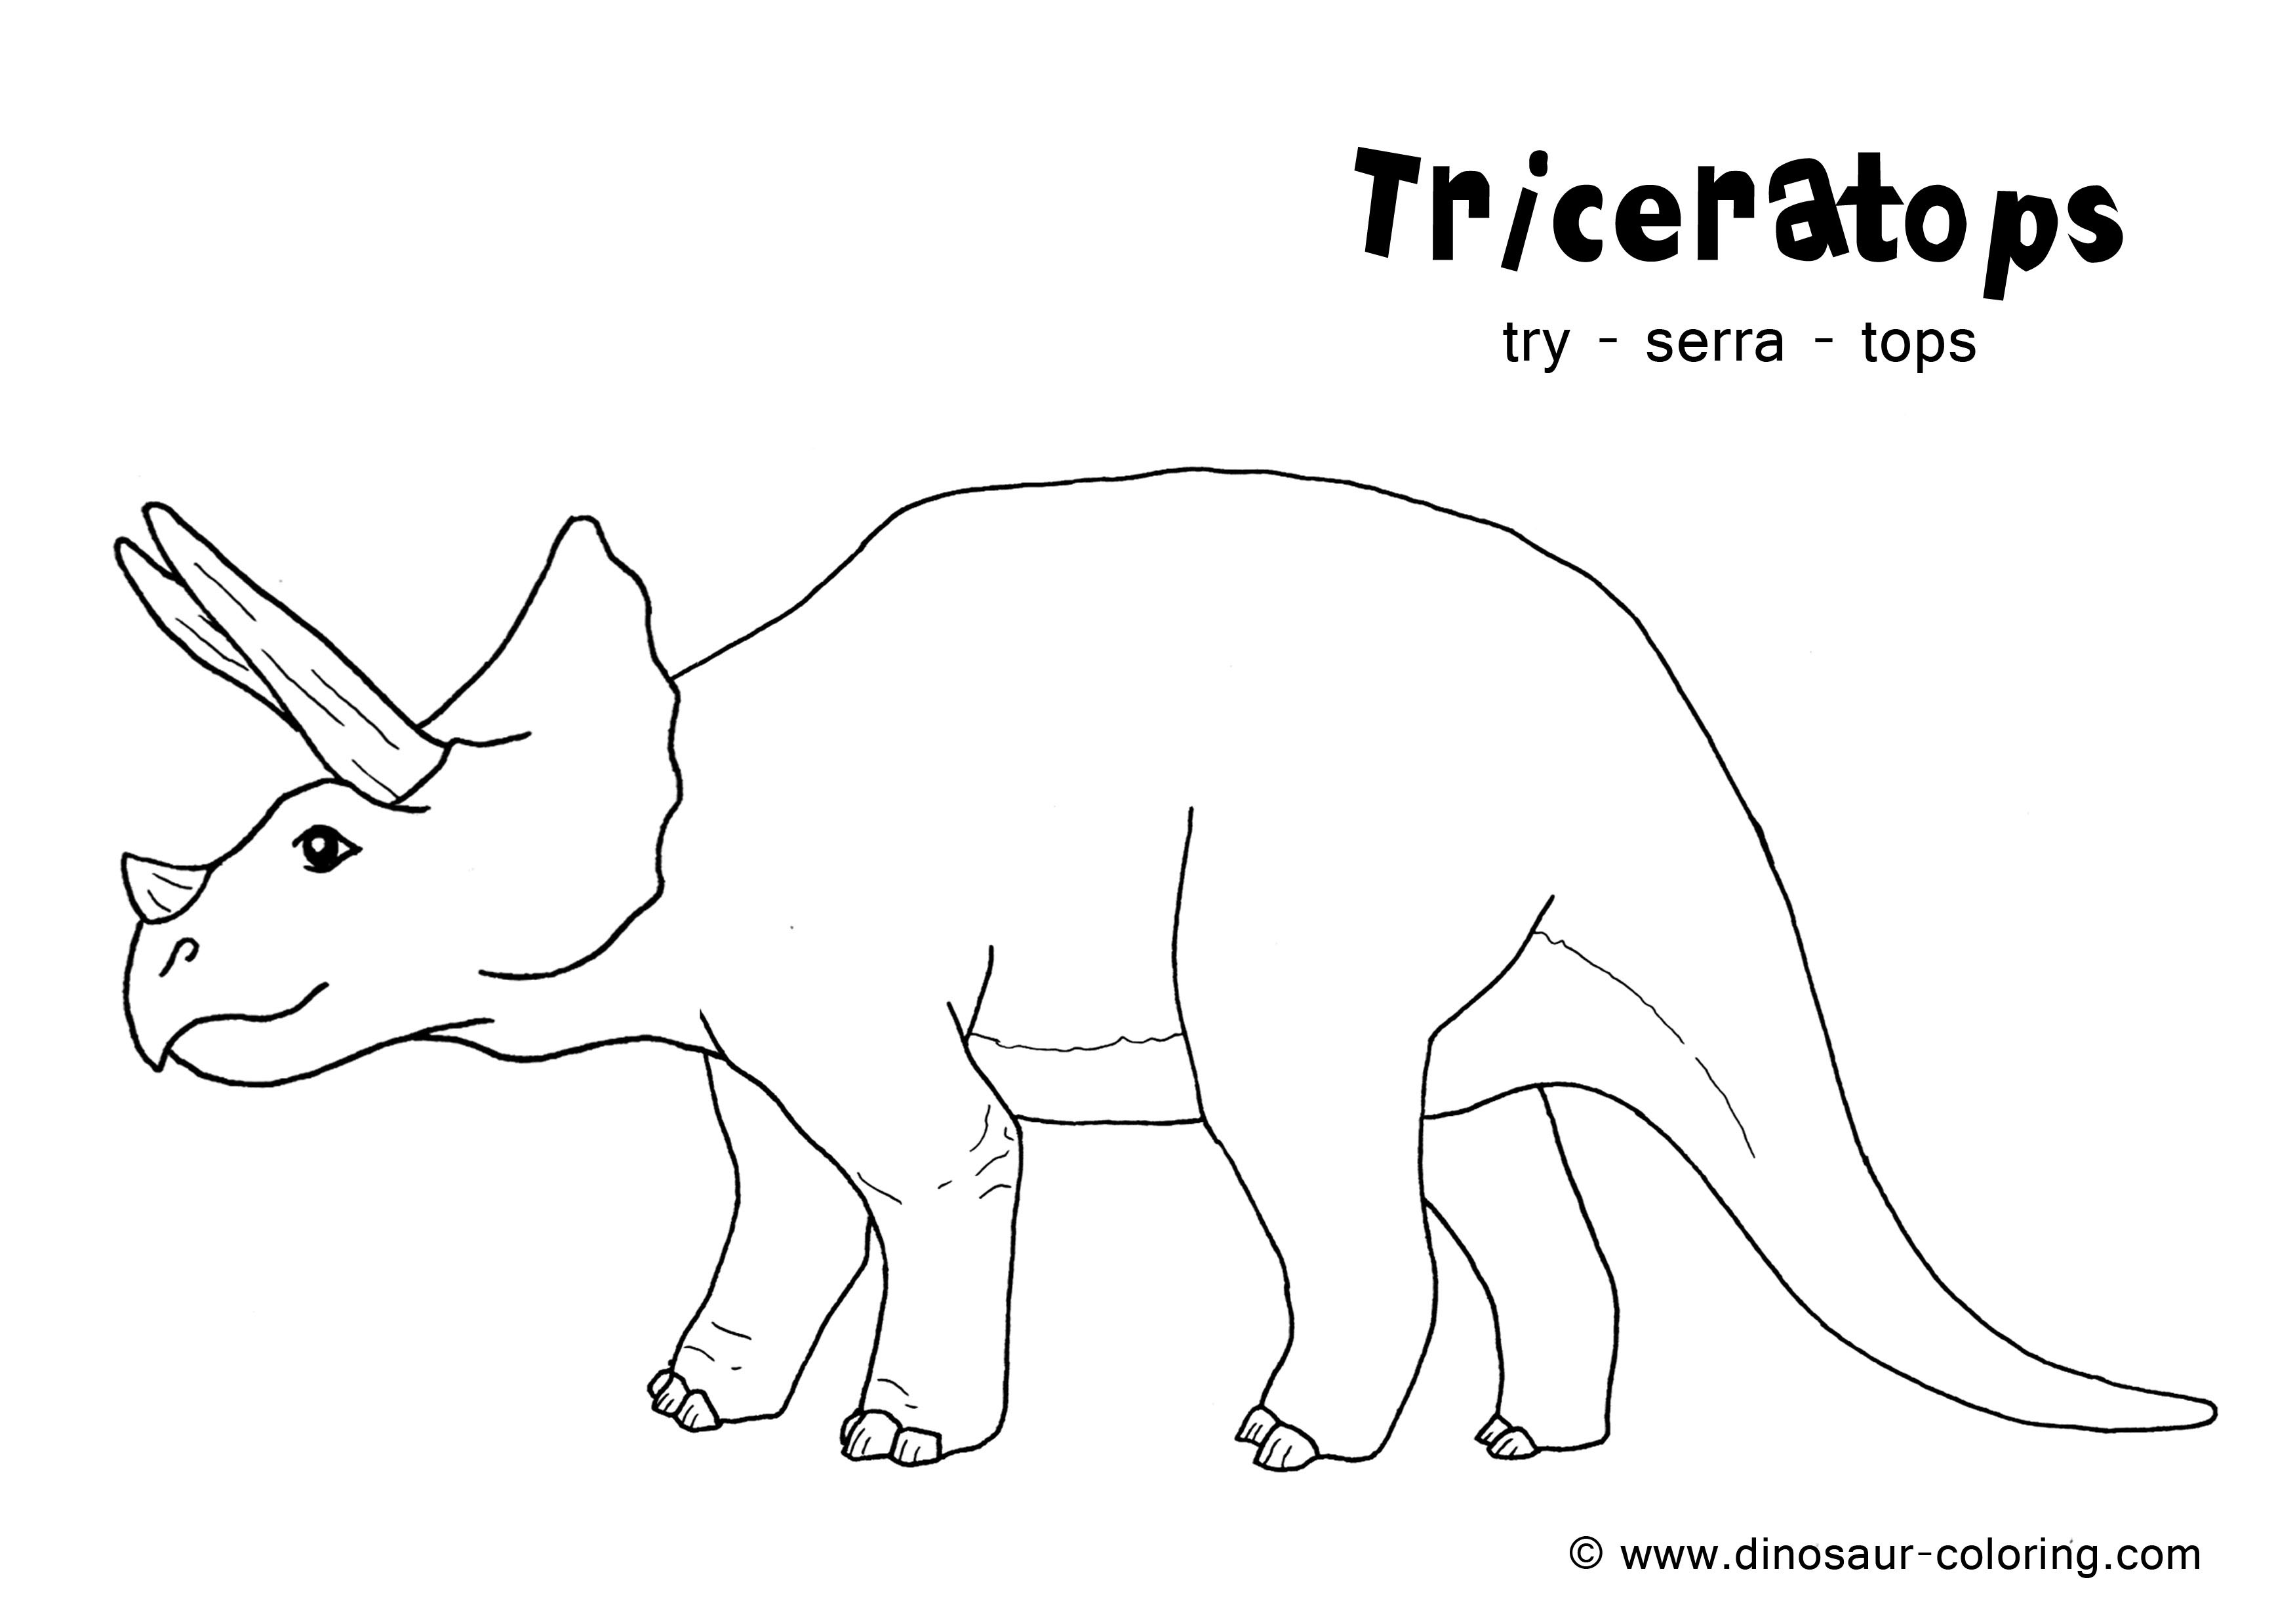 Coloring Pages Dinosaurs Pdf : Triceratops coloring